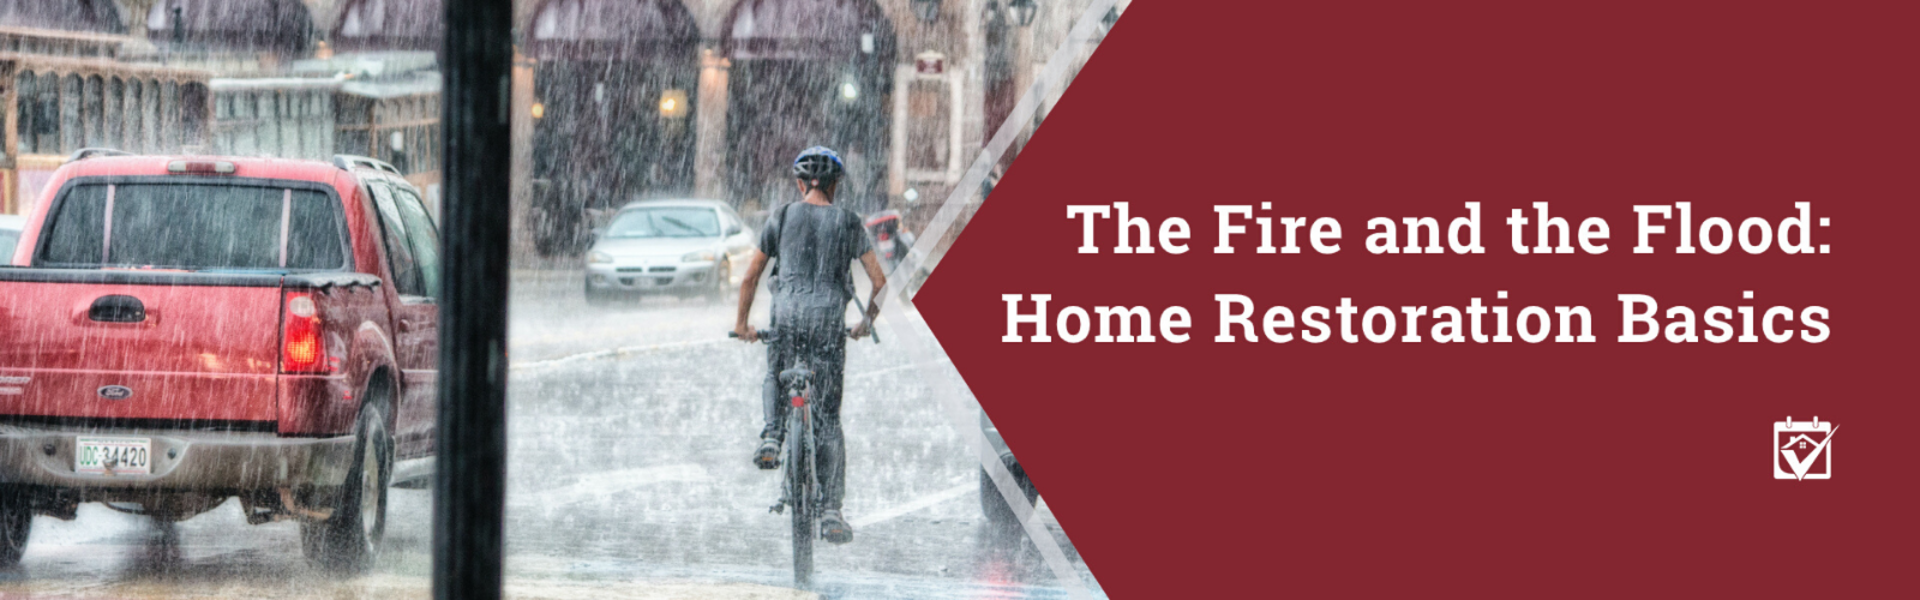 The Fire and the Flood: Home Restoration Basics